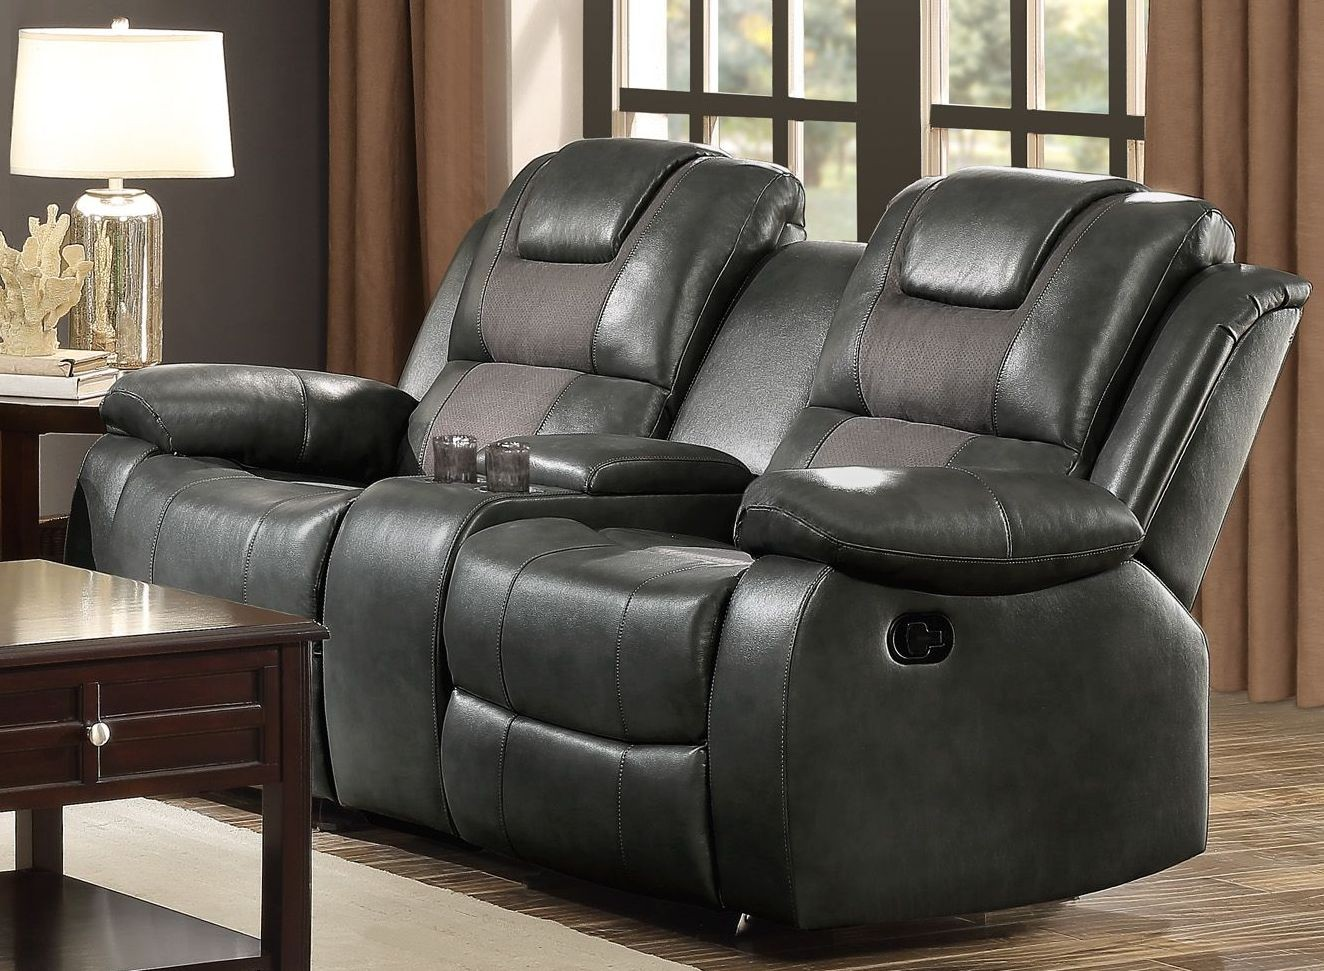 Taye Gray Double Glider Reclining Console Loveseat From Homelegance Coleman Furniture